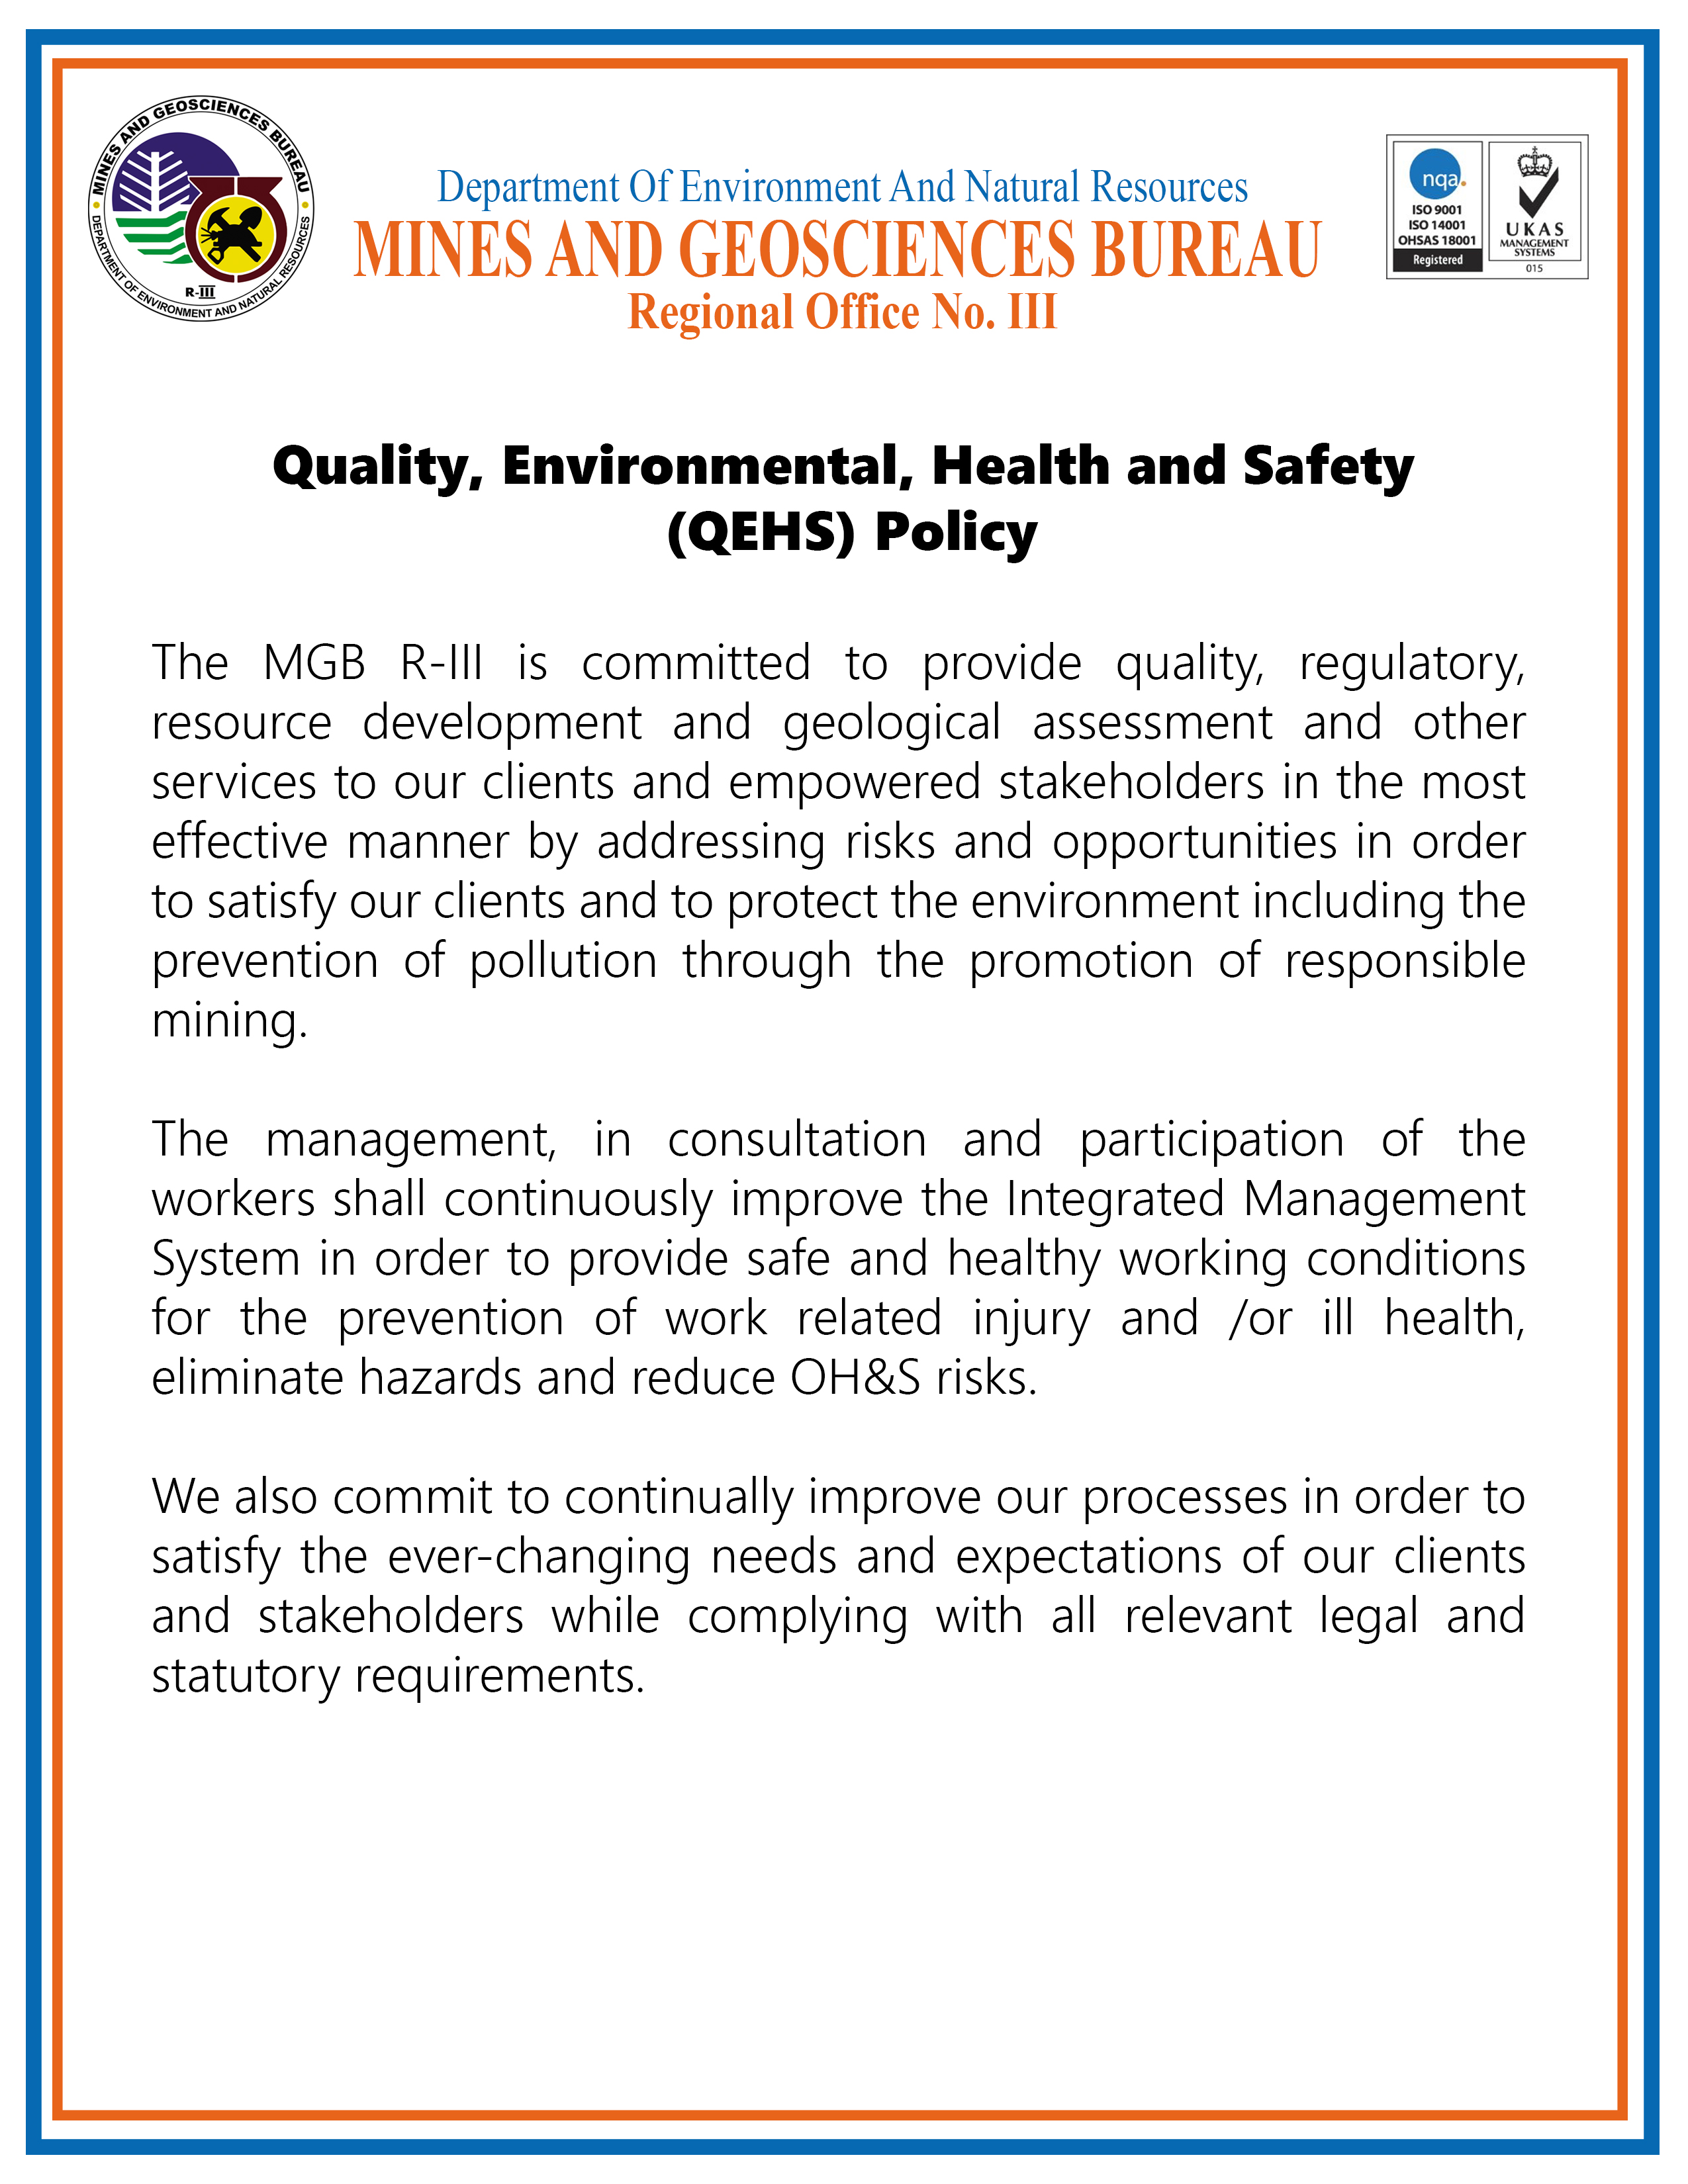 QEHS Policy 2021